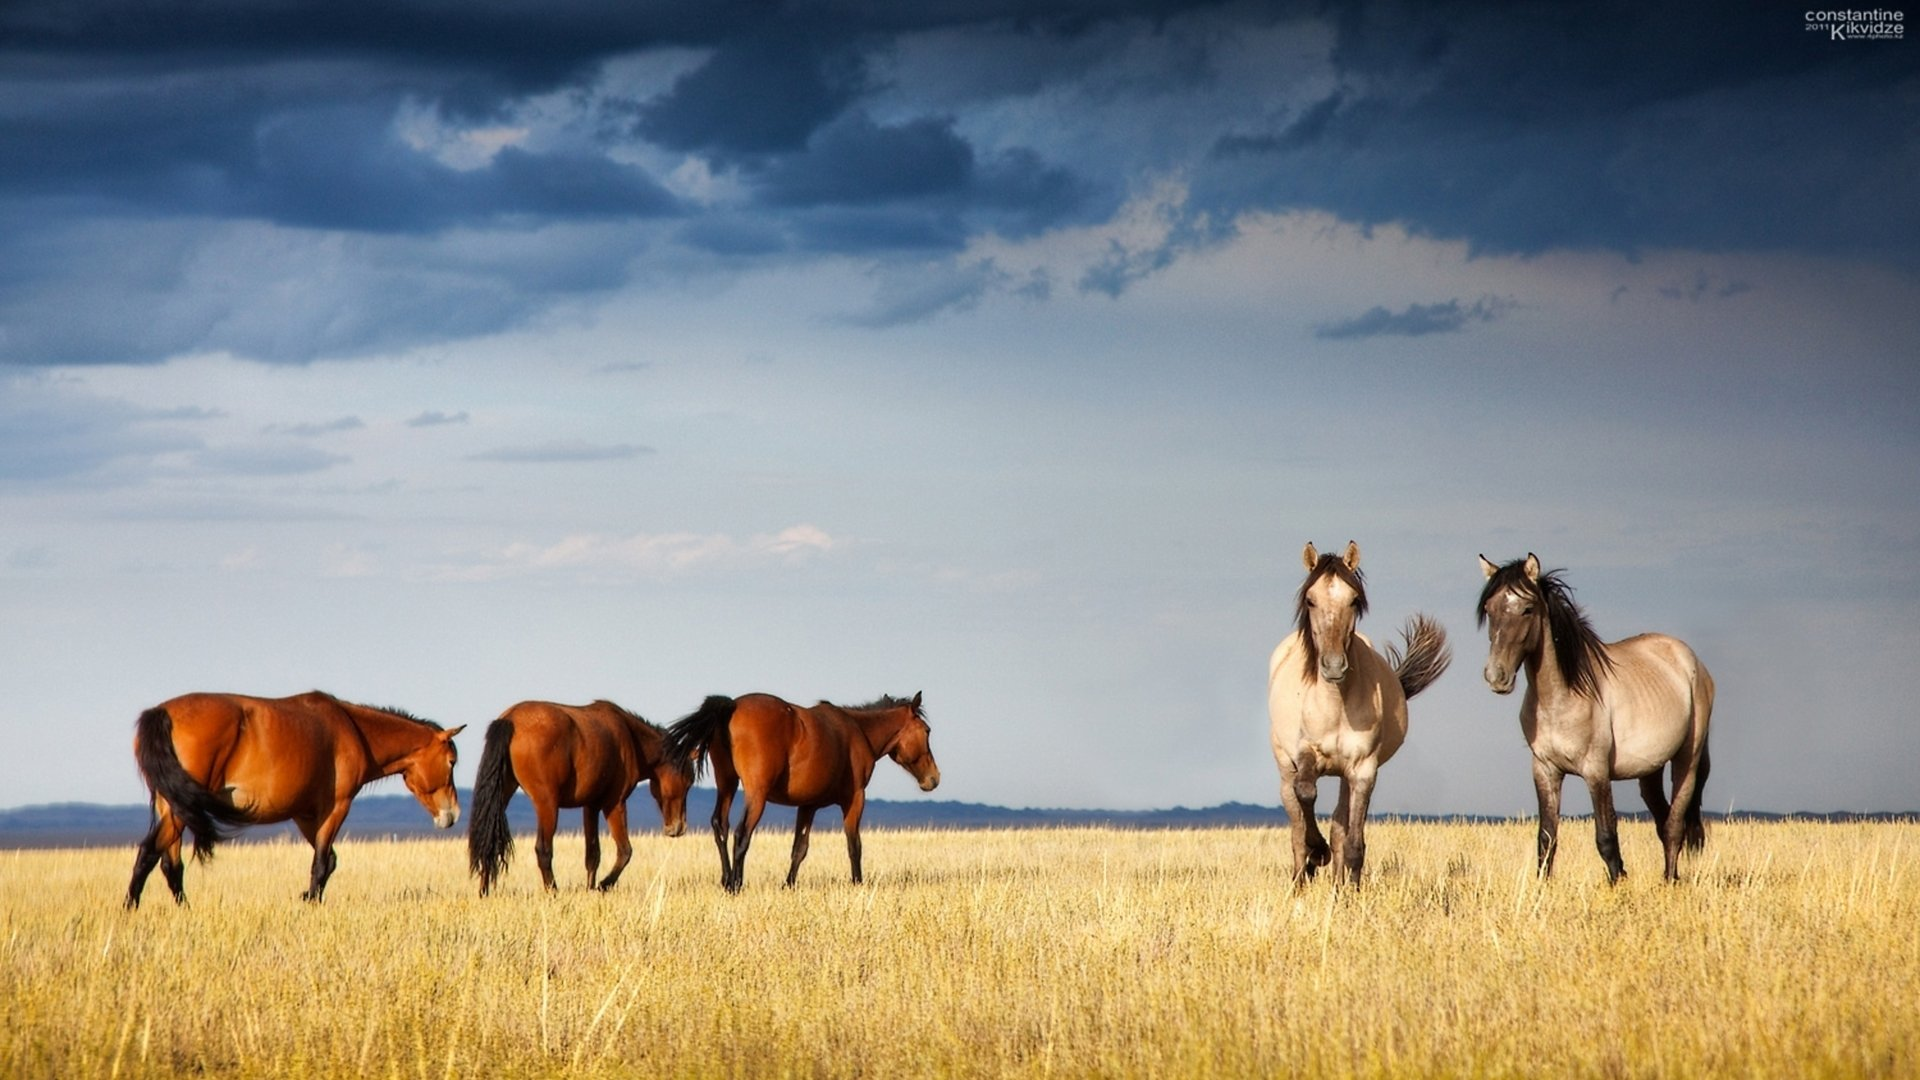 Awesome Horse free wallpaper ID:24012 for hd 1920x1080 desktop